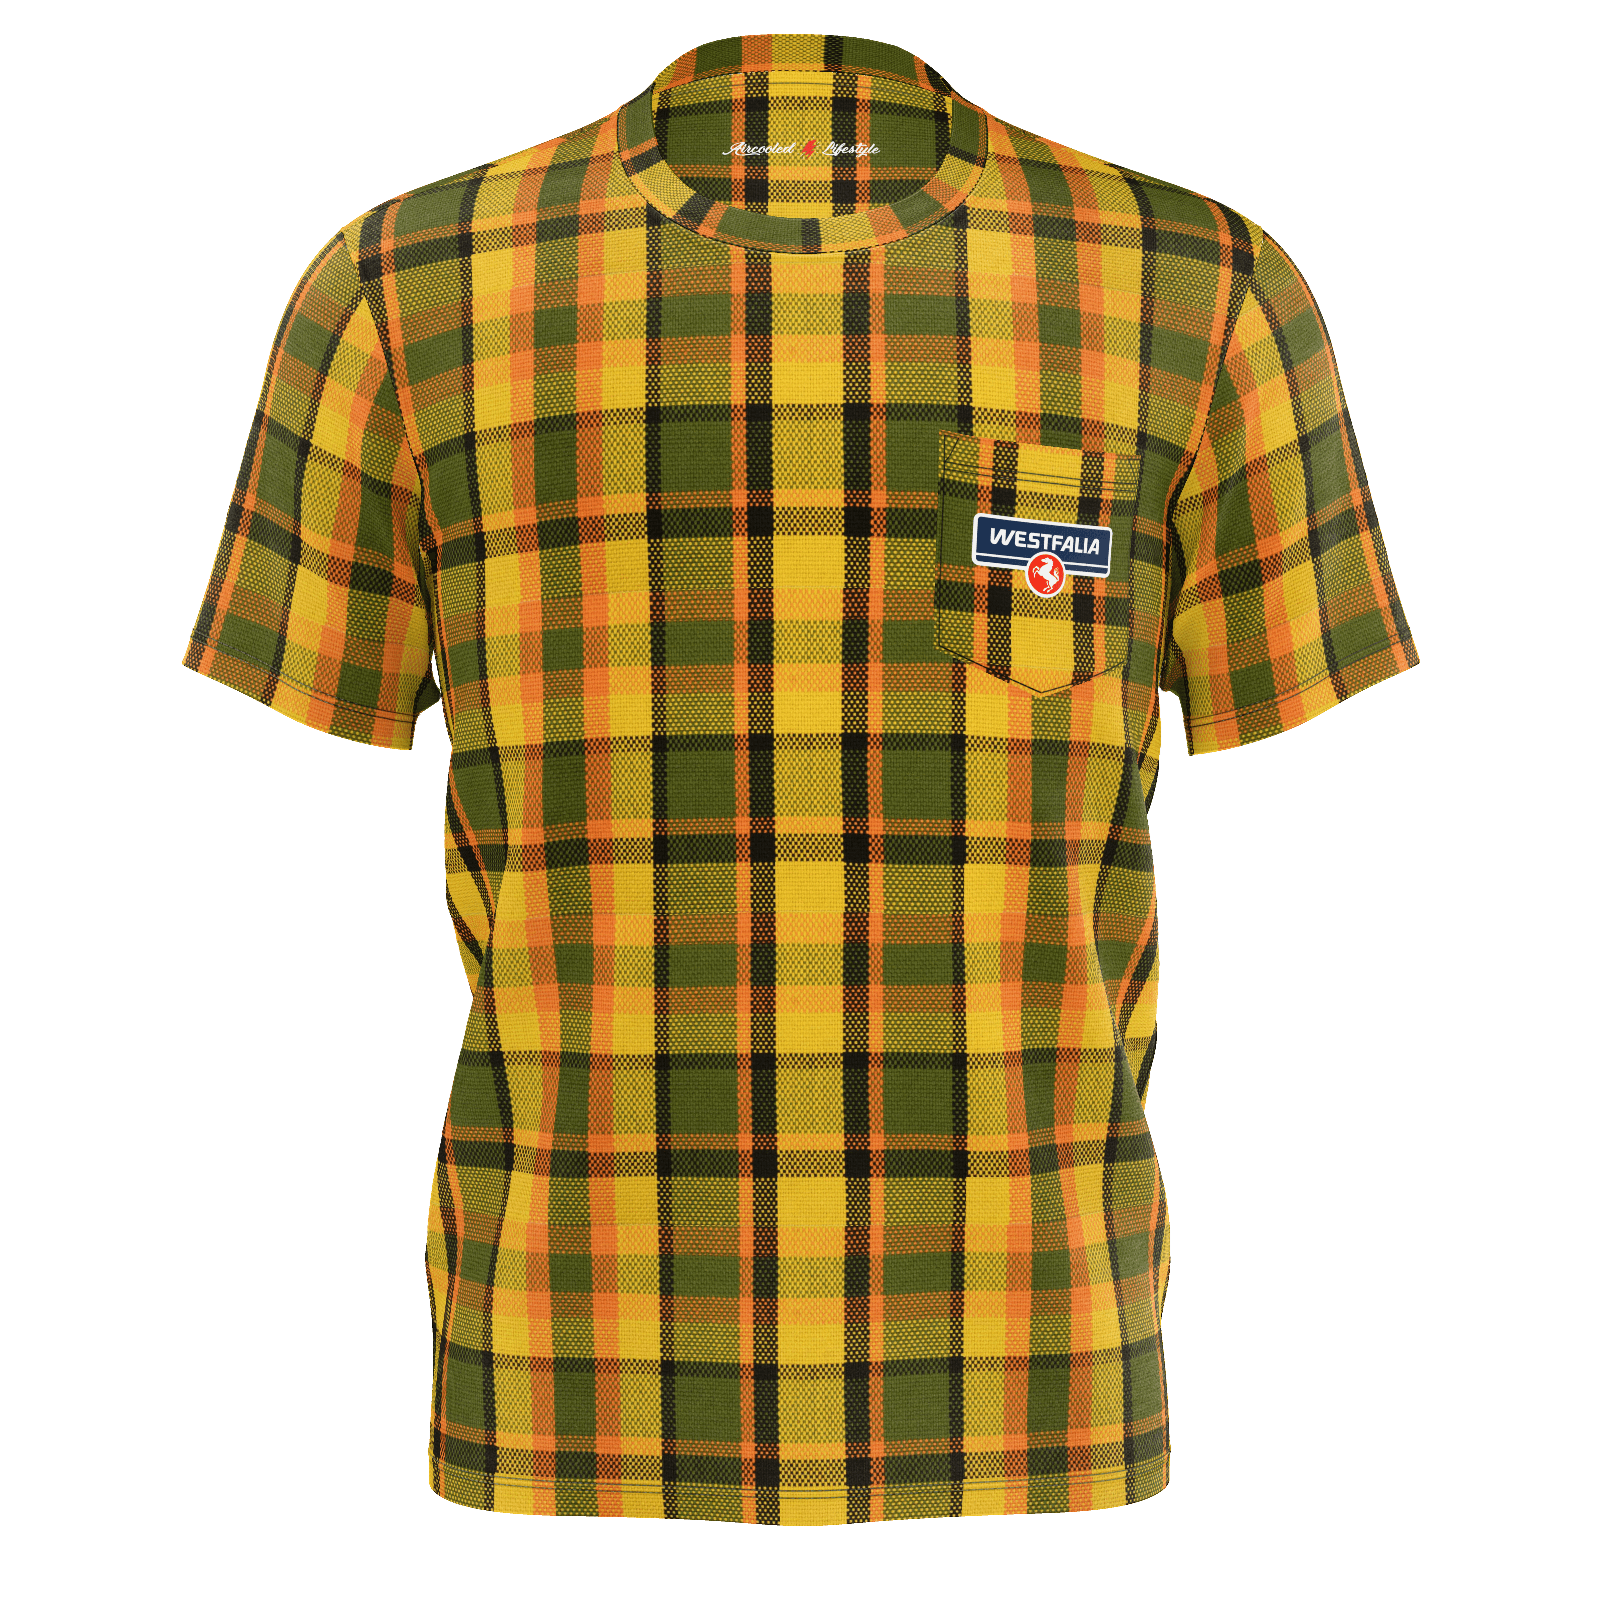 Westfalia Yellow Plaid Pocket Tee